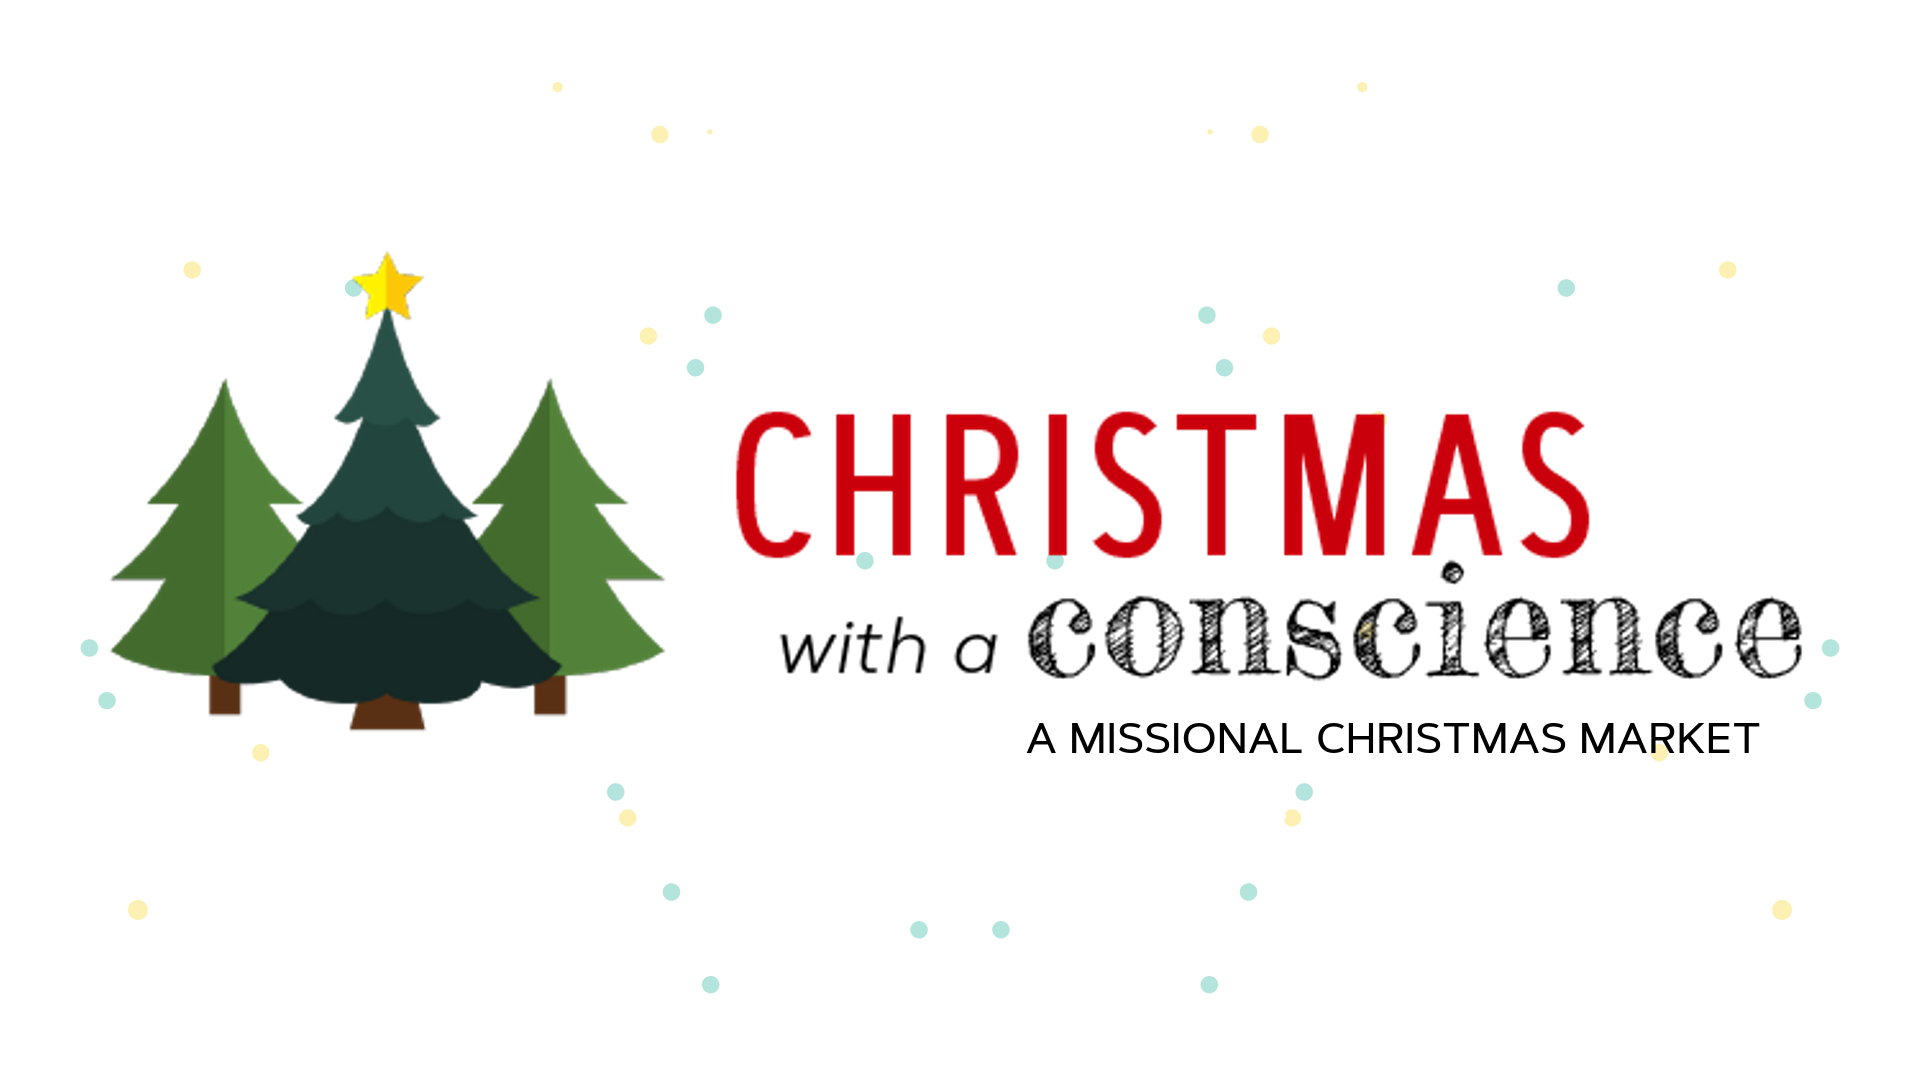 missional-christmas-market-with-a-conscience-first-baptist-church-decatur-2019-event.png